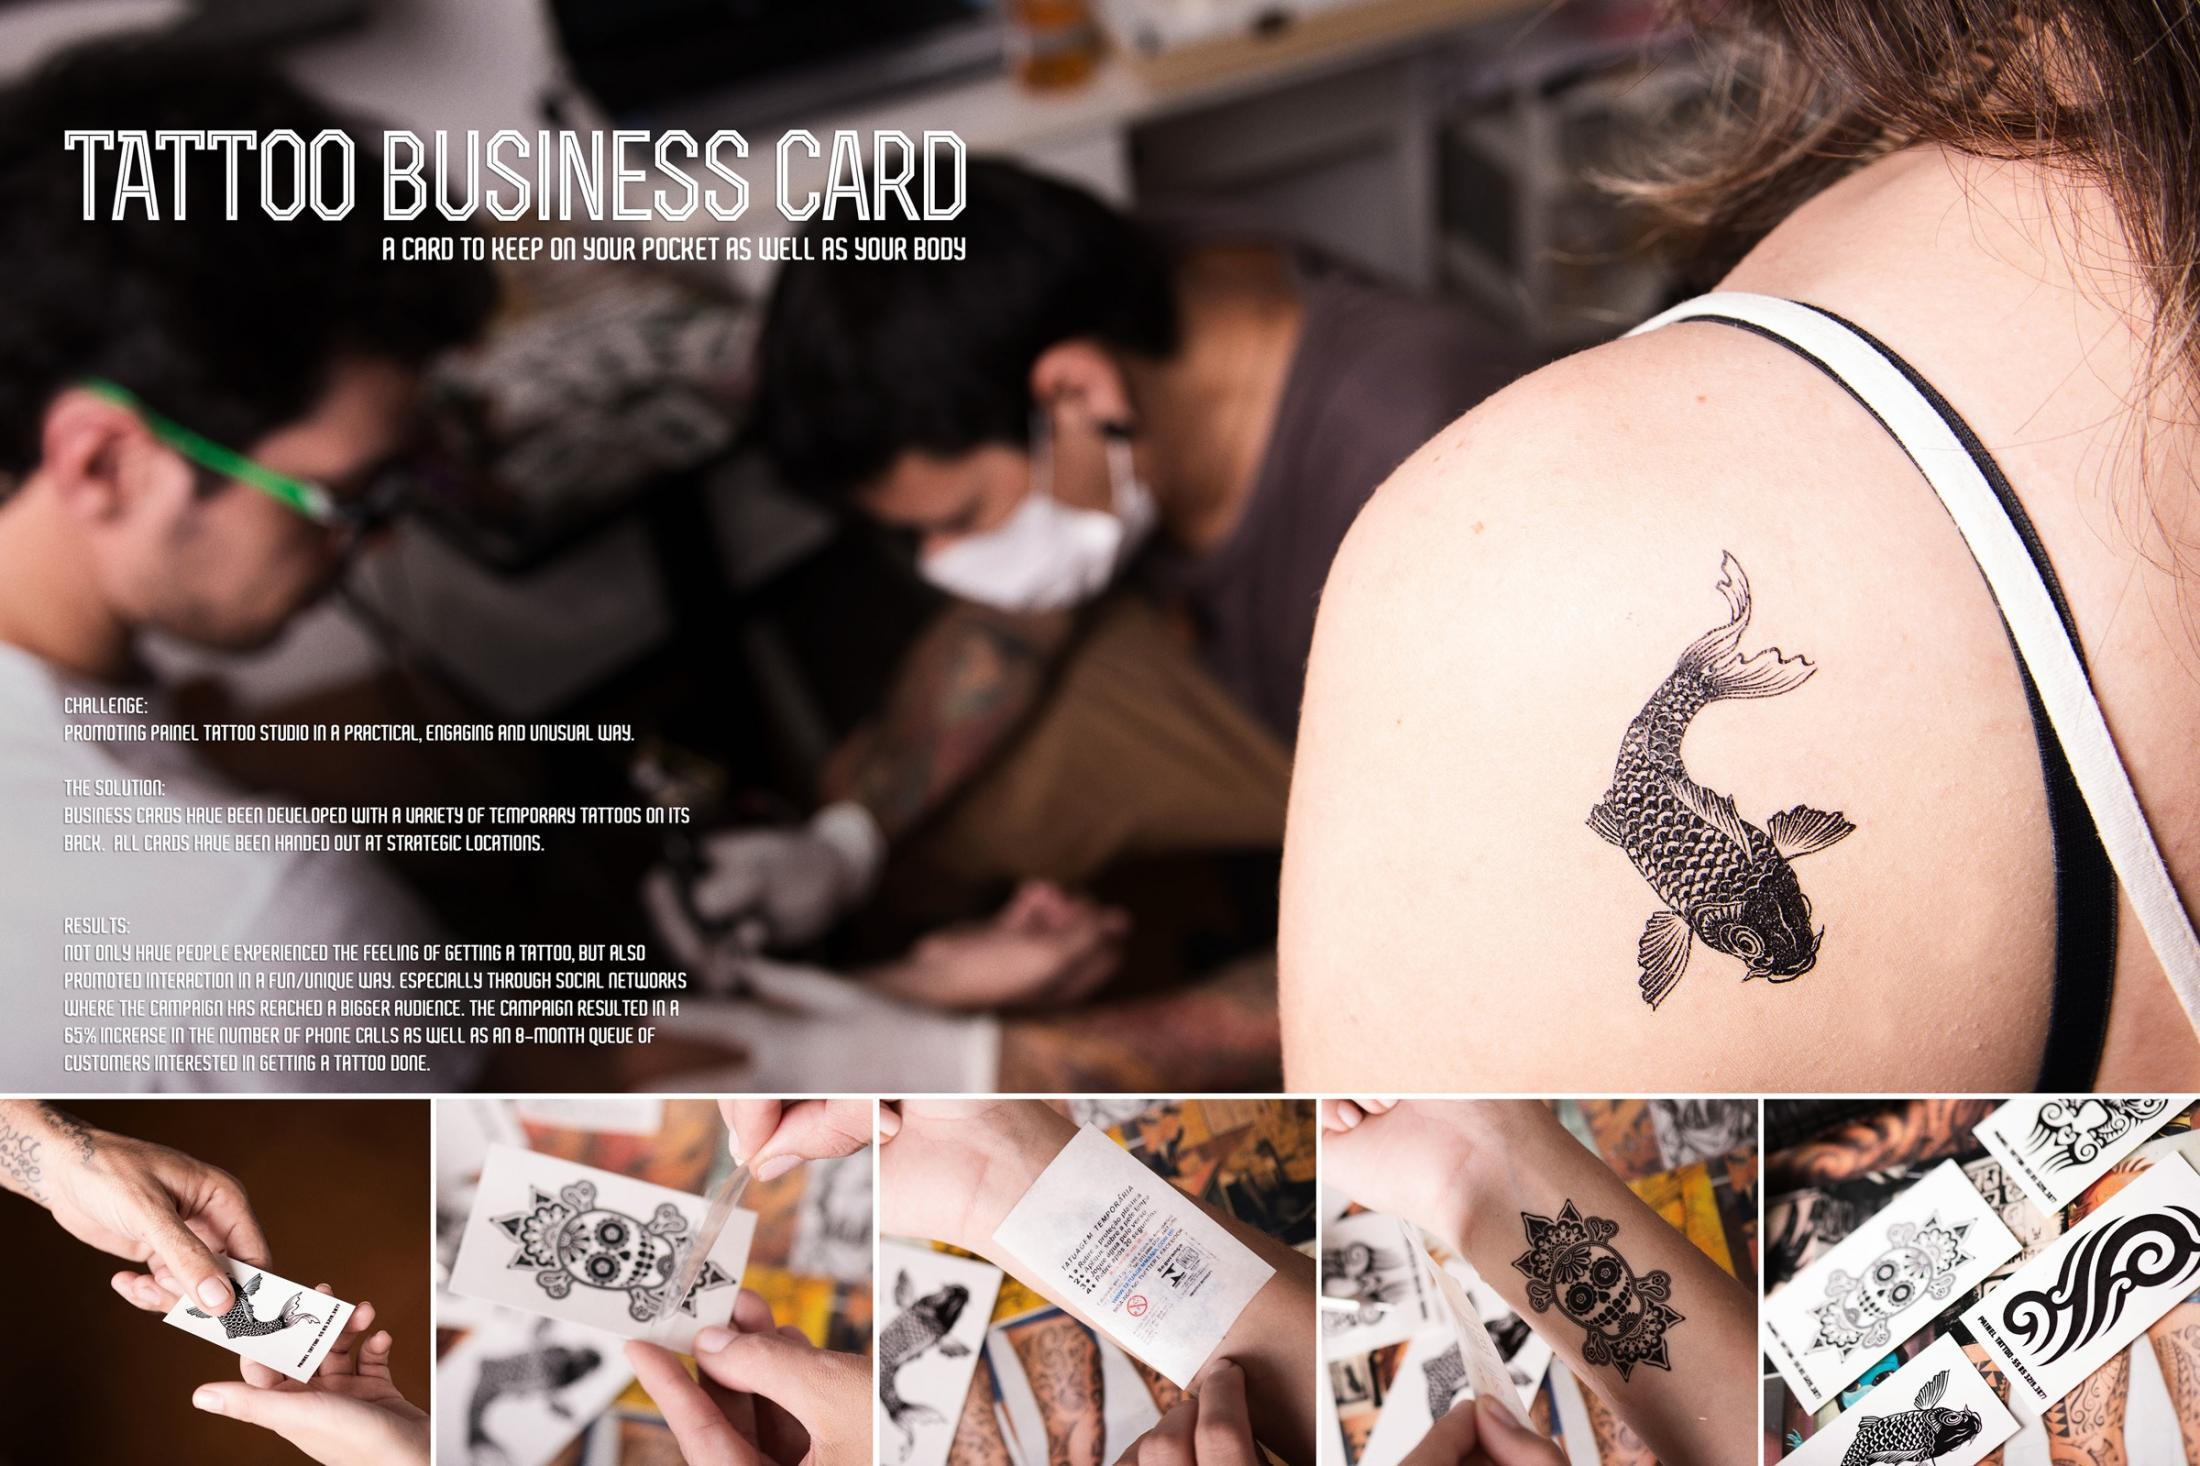 Painel Tattoo Studio Ambient Ad -  Tattoo business card